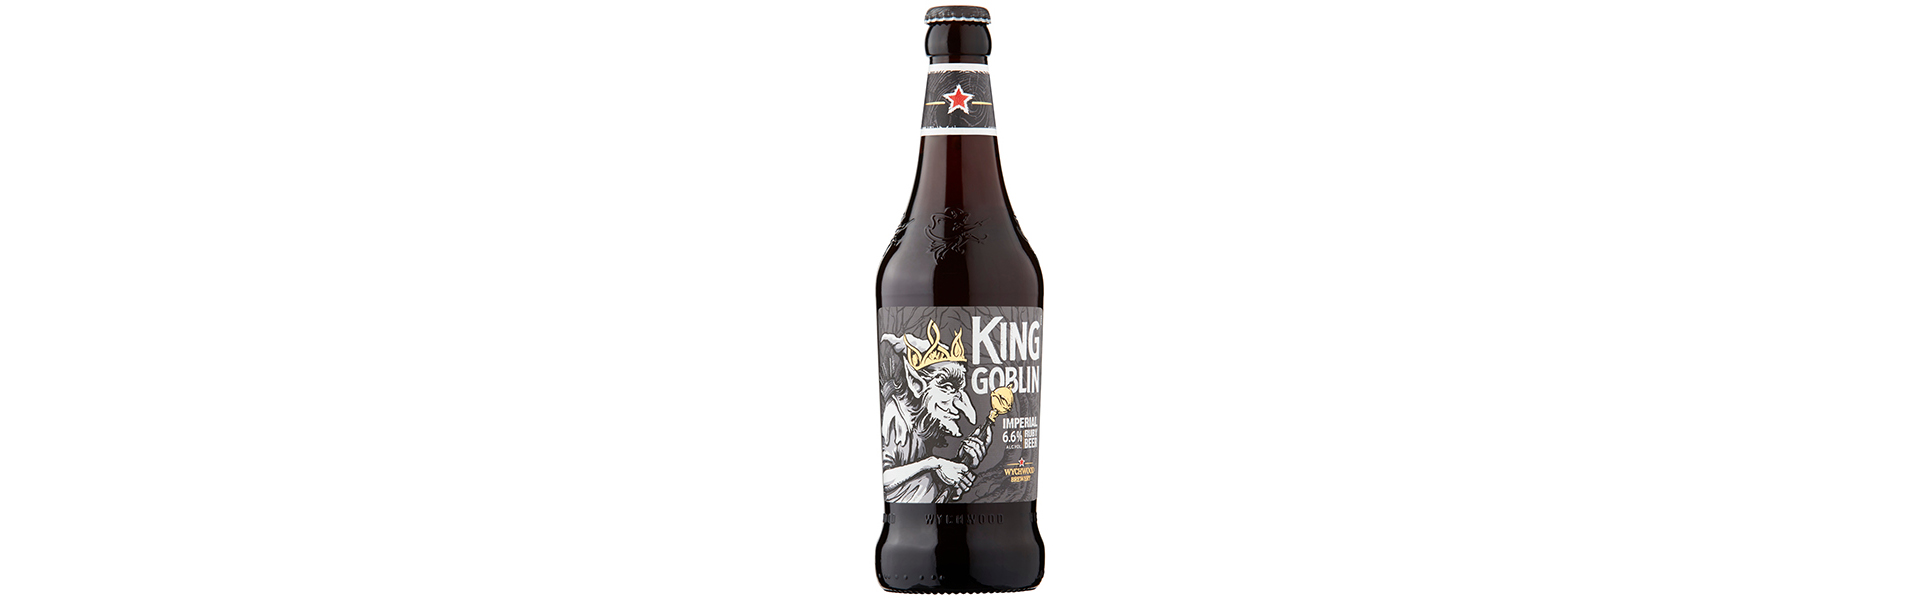 King Goblin Imperial Ruby Beer lanseras på Systembolaget 1 september.